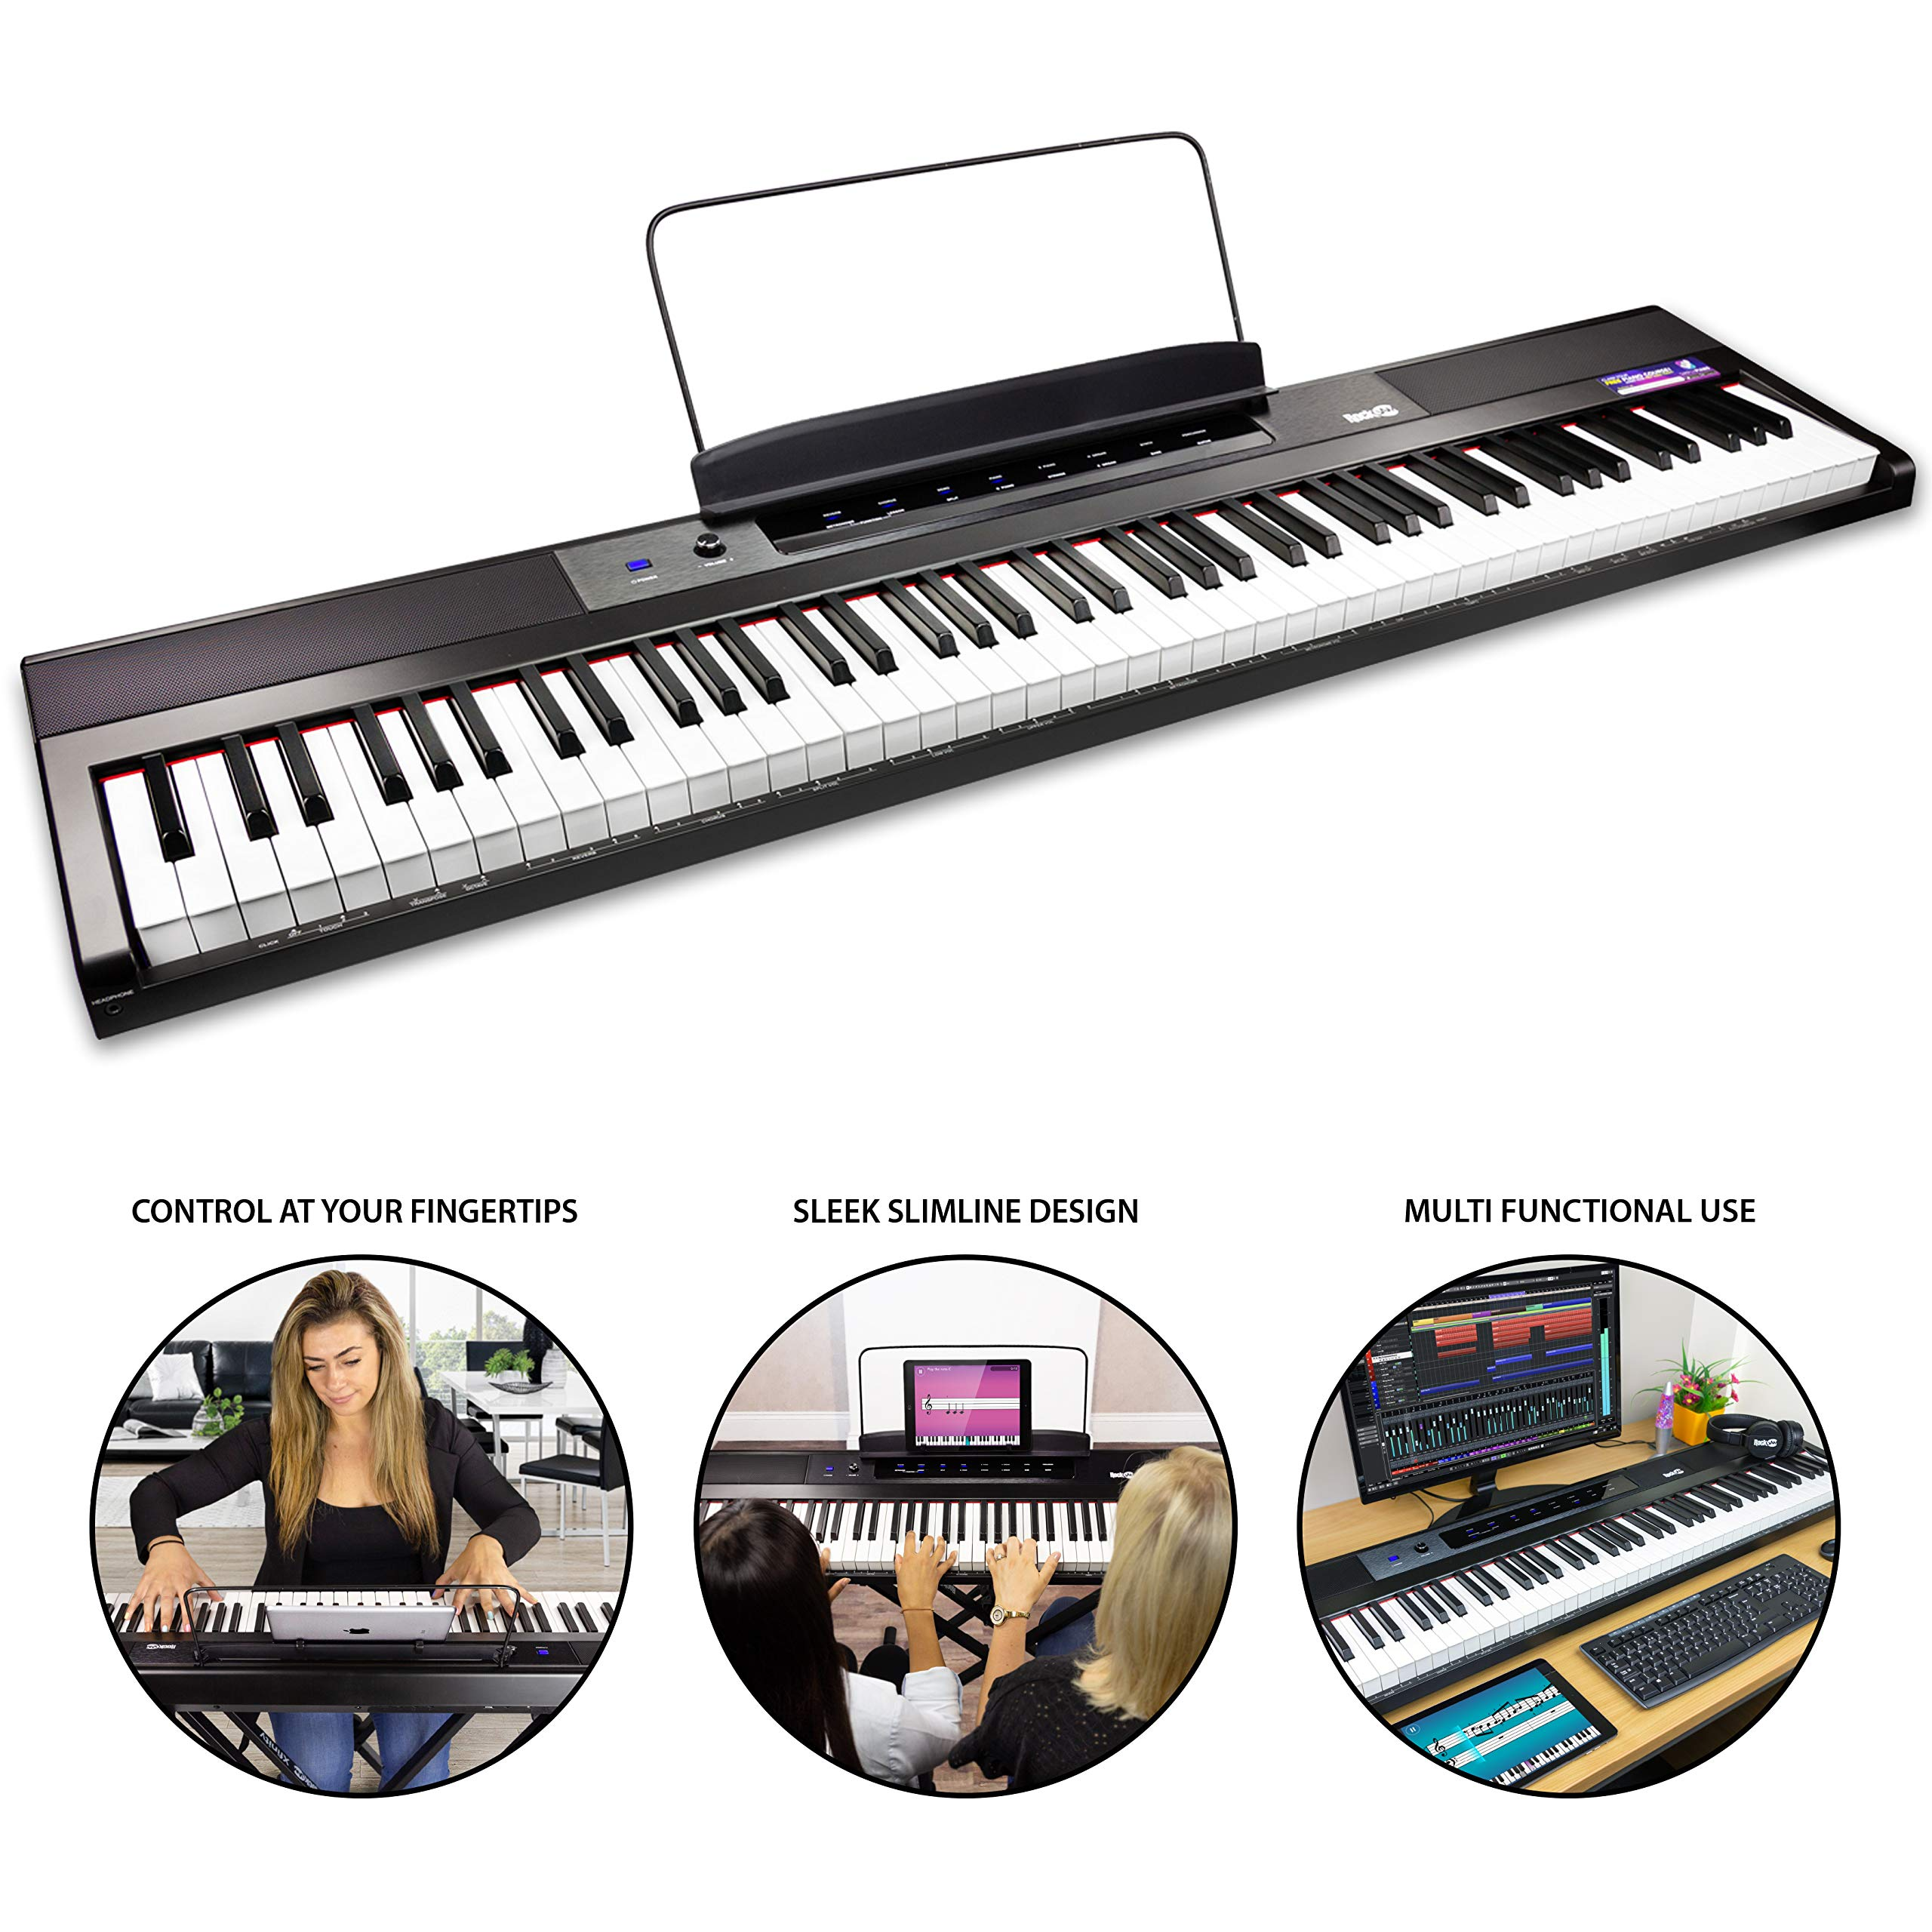 RockJam 88-Key Beginner Digital Piano with Full-Size Semi-Weighted Keys, Power Supply, Simply Piano App Content & Key Note Stickers by RockJam